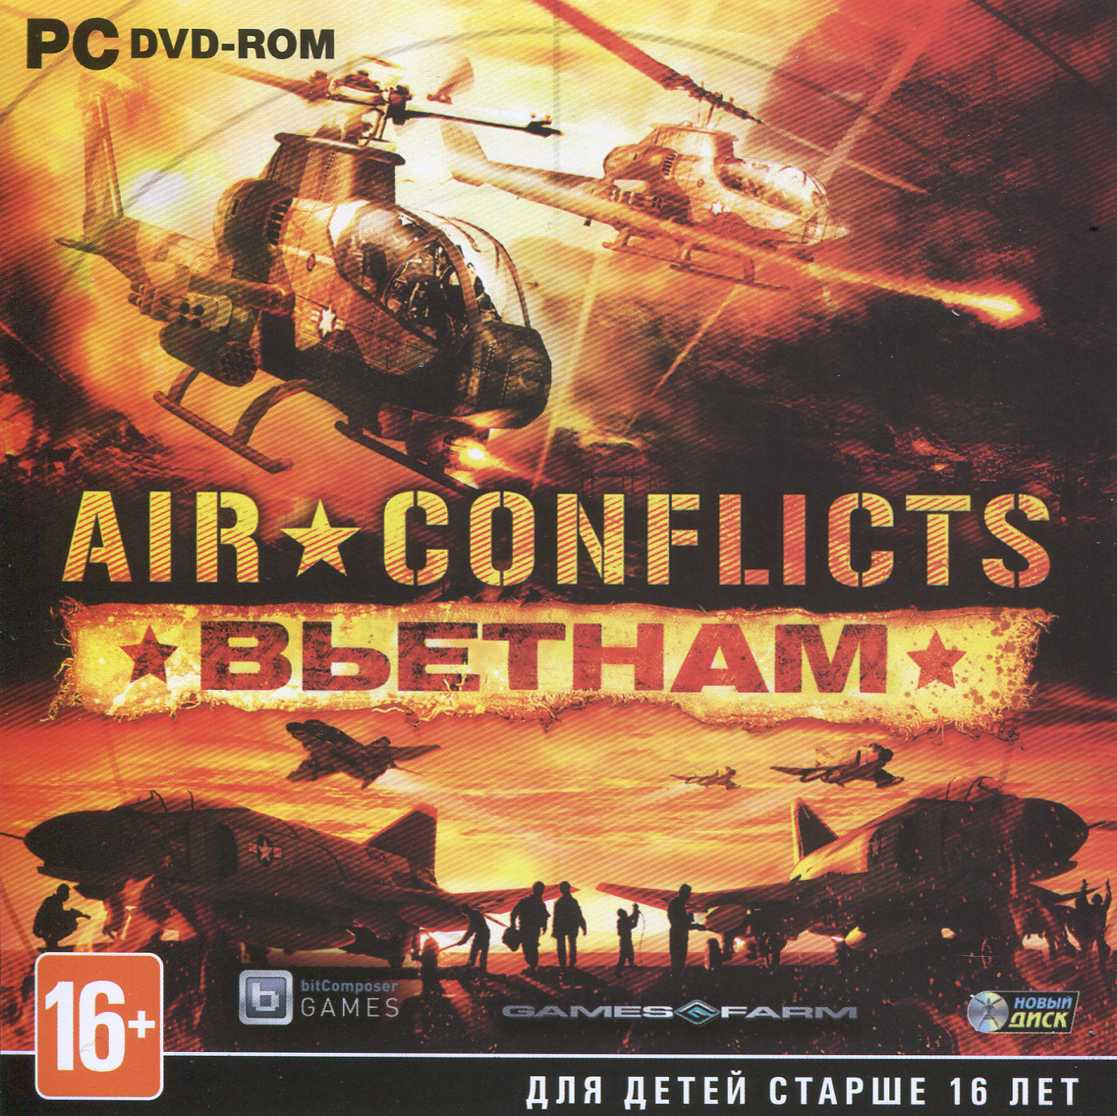 Air Conflicts: Vietnam (Activation Key Steam)